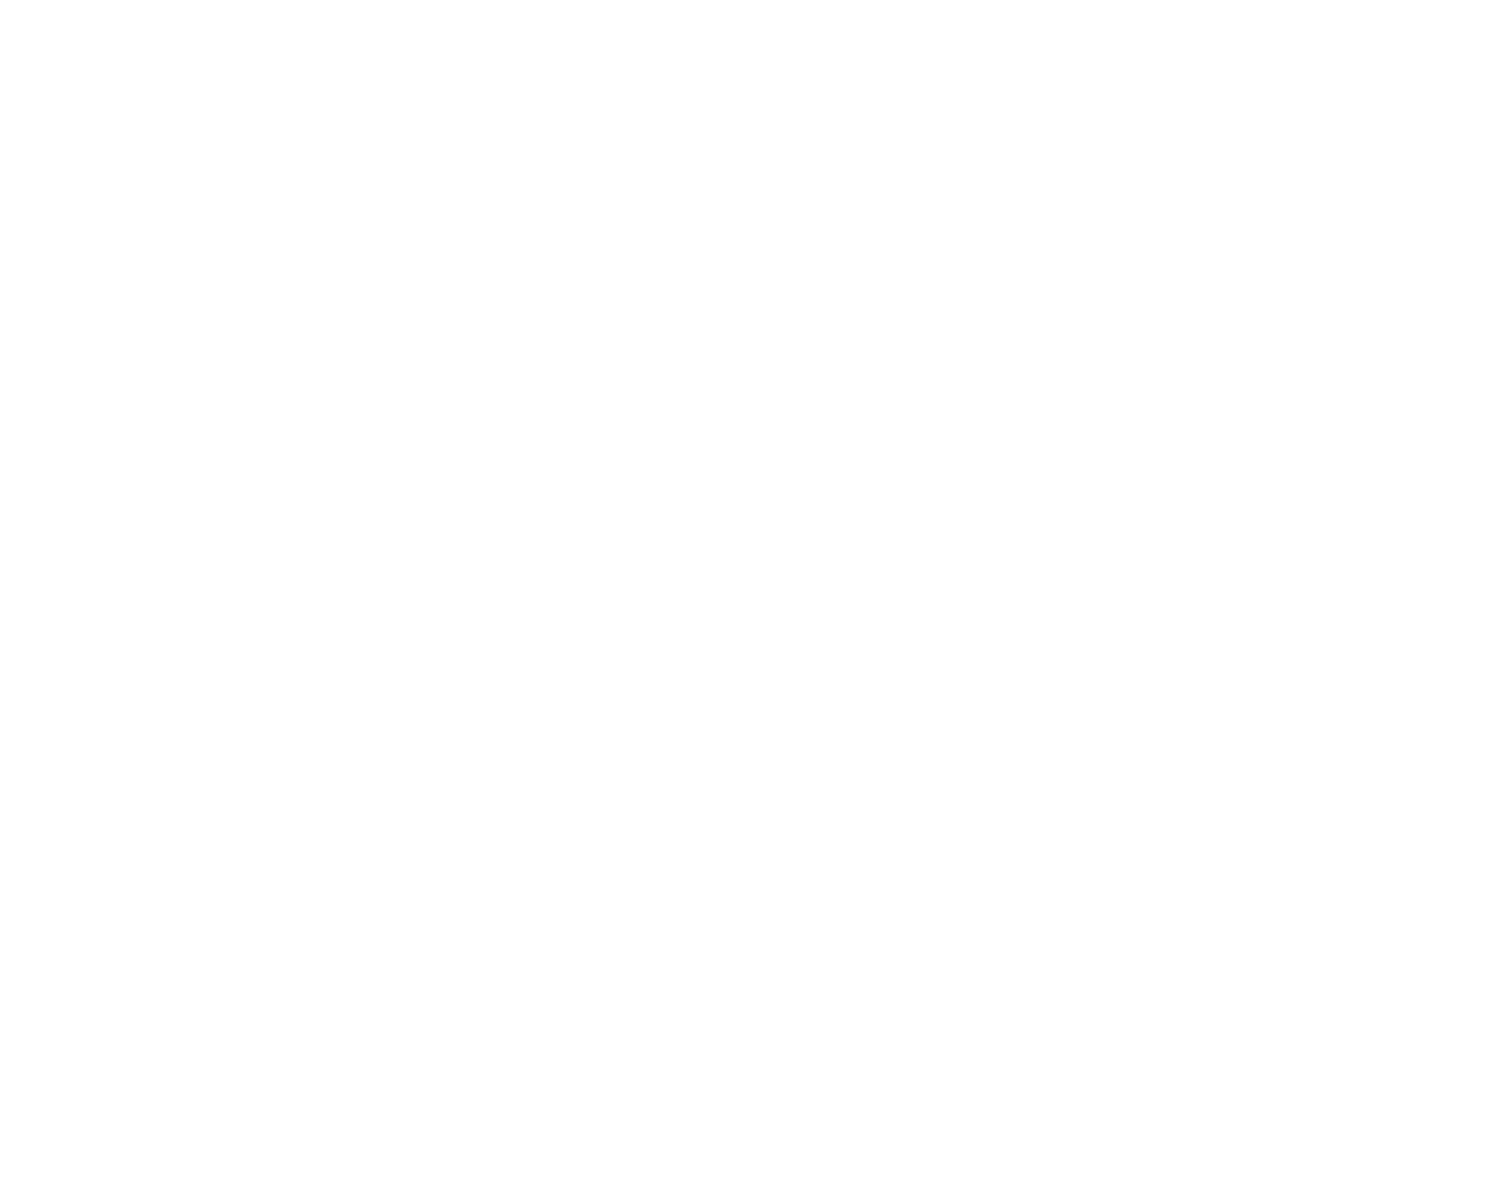 Ohio Amish Country Farmers Market